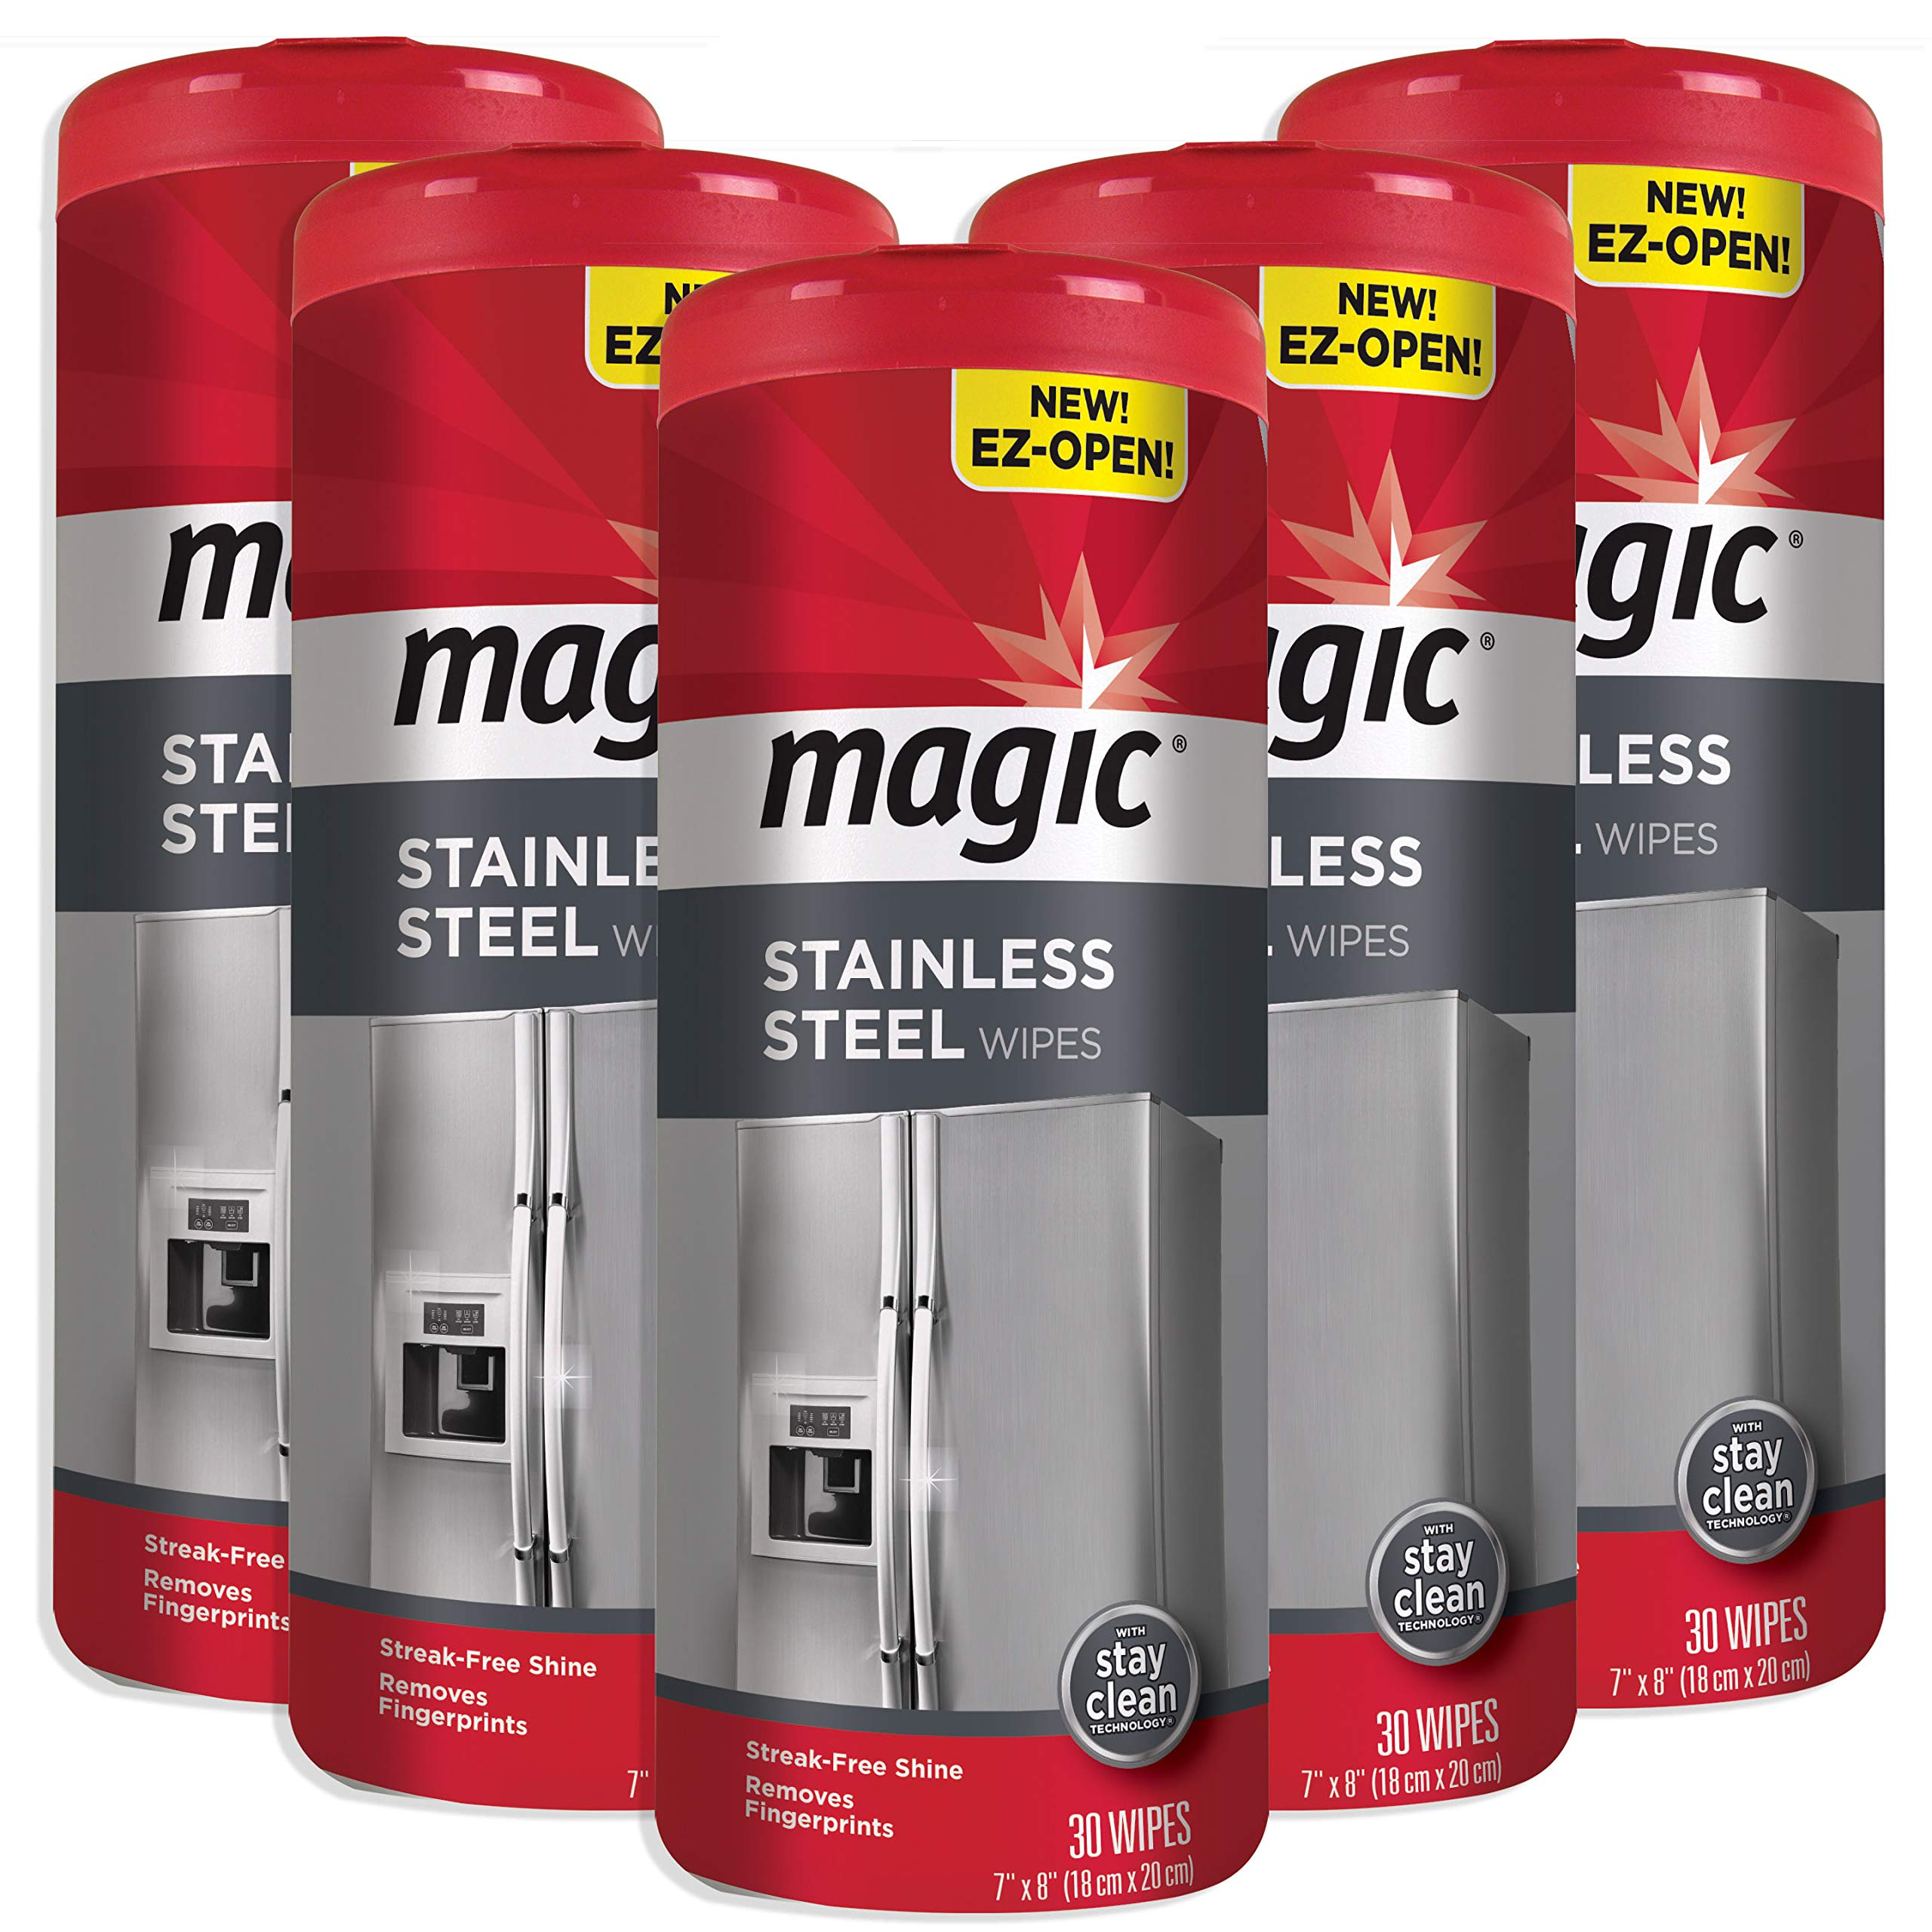 Magic Stainless Steel Wipes - Removes Fingerprints, Residue, Water Marks and Grease from Appliances - Works Great on Refrigerators, Dishwashers, Ovens - 30 Count by Magic